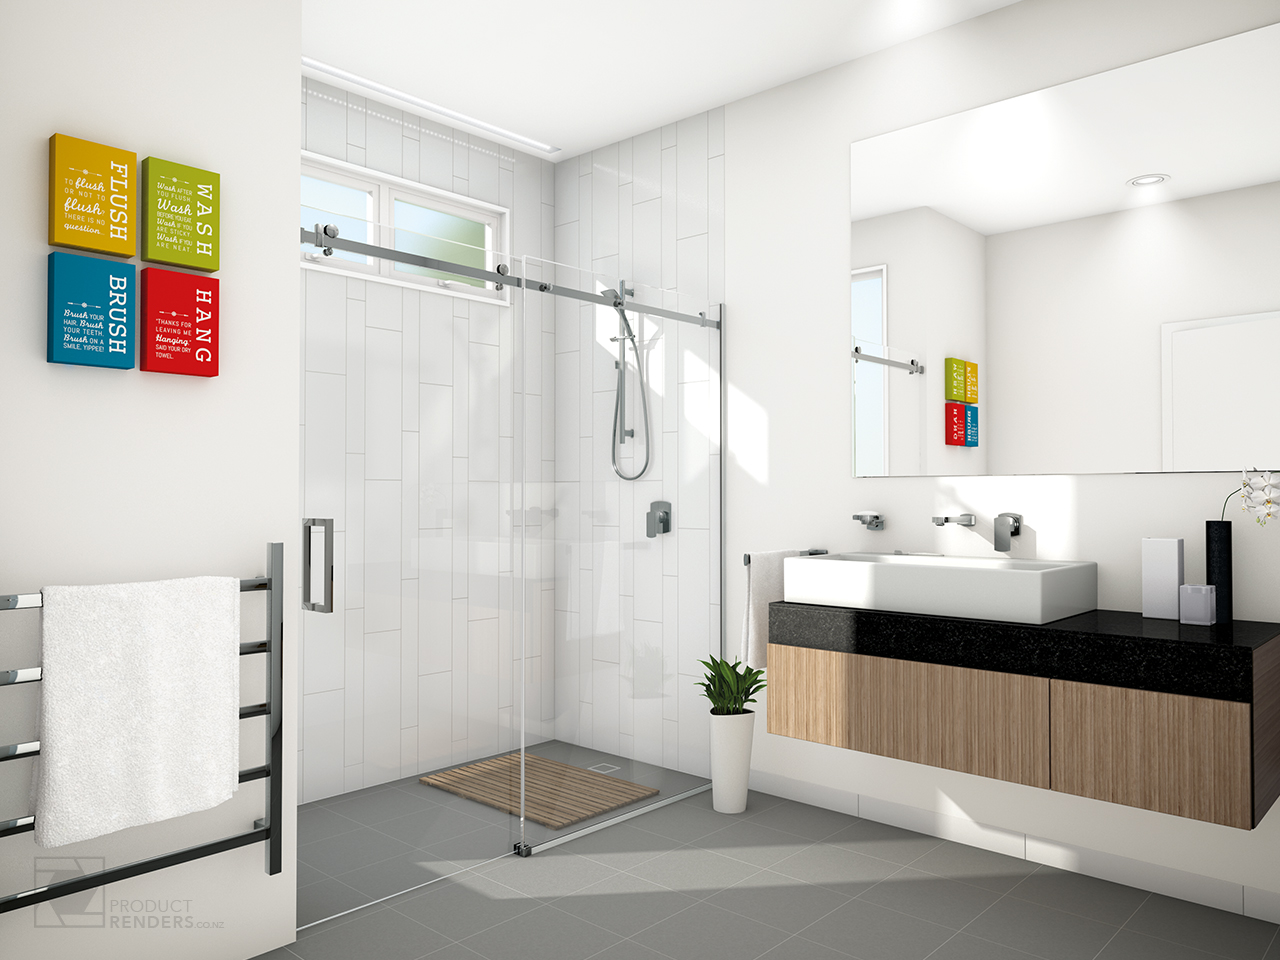 3D render of a bathroom to show options available from MetroGlass